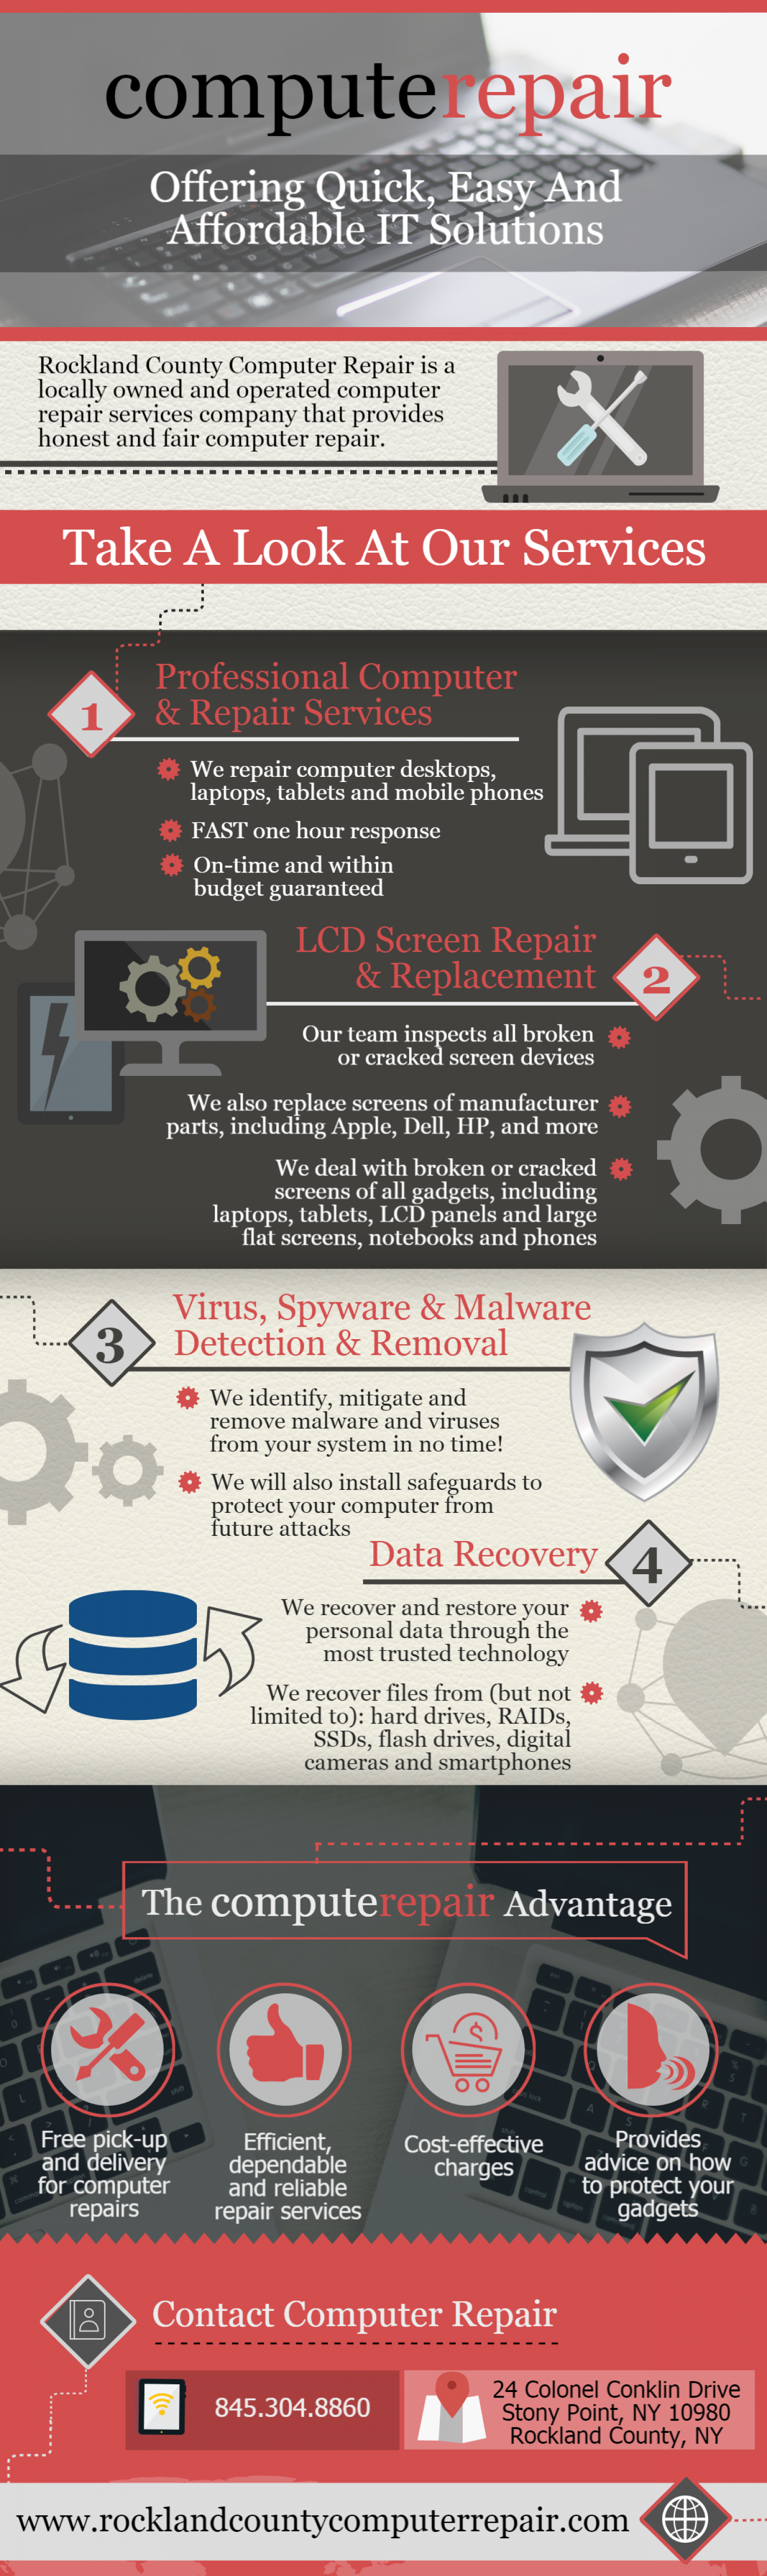 Offering Affordable, Easy and Quick IT solutions! Infographic